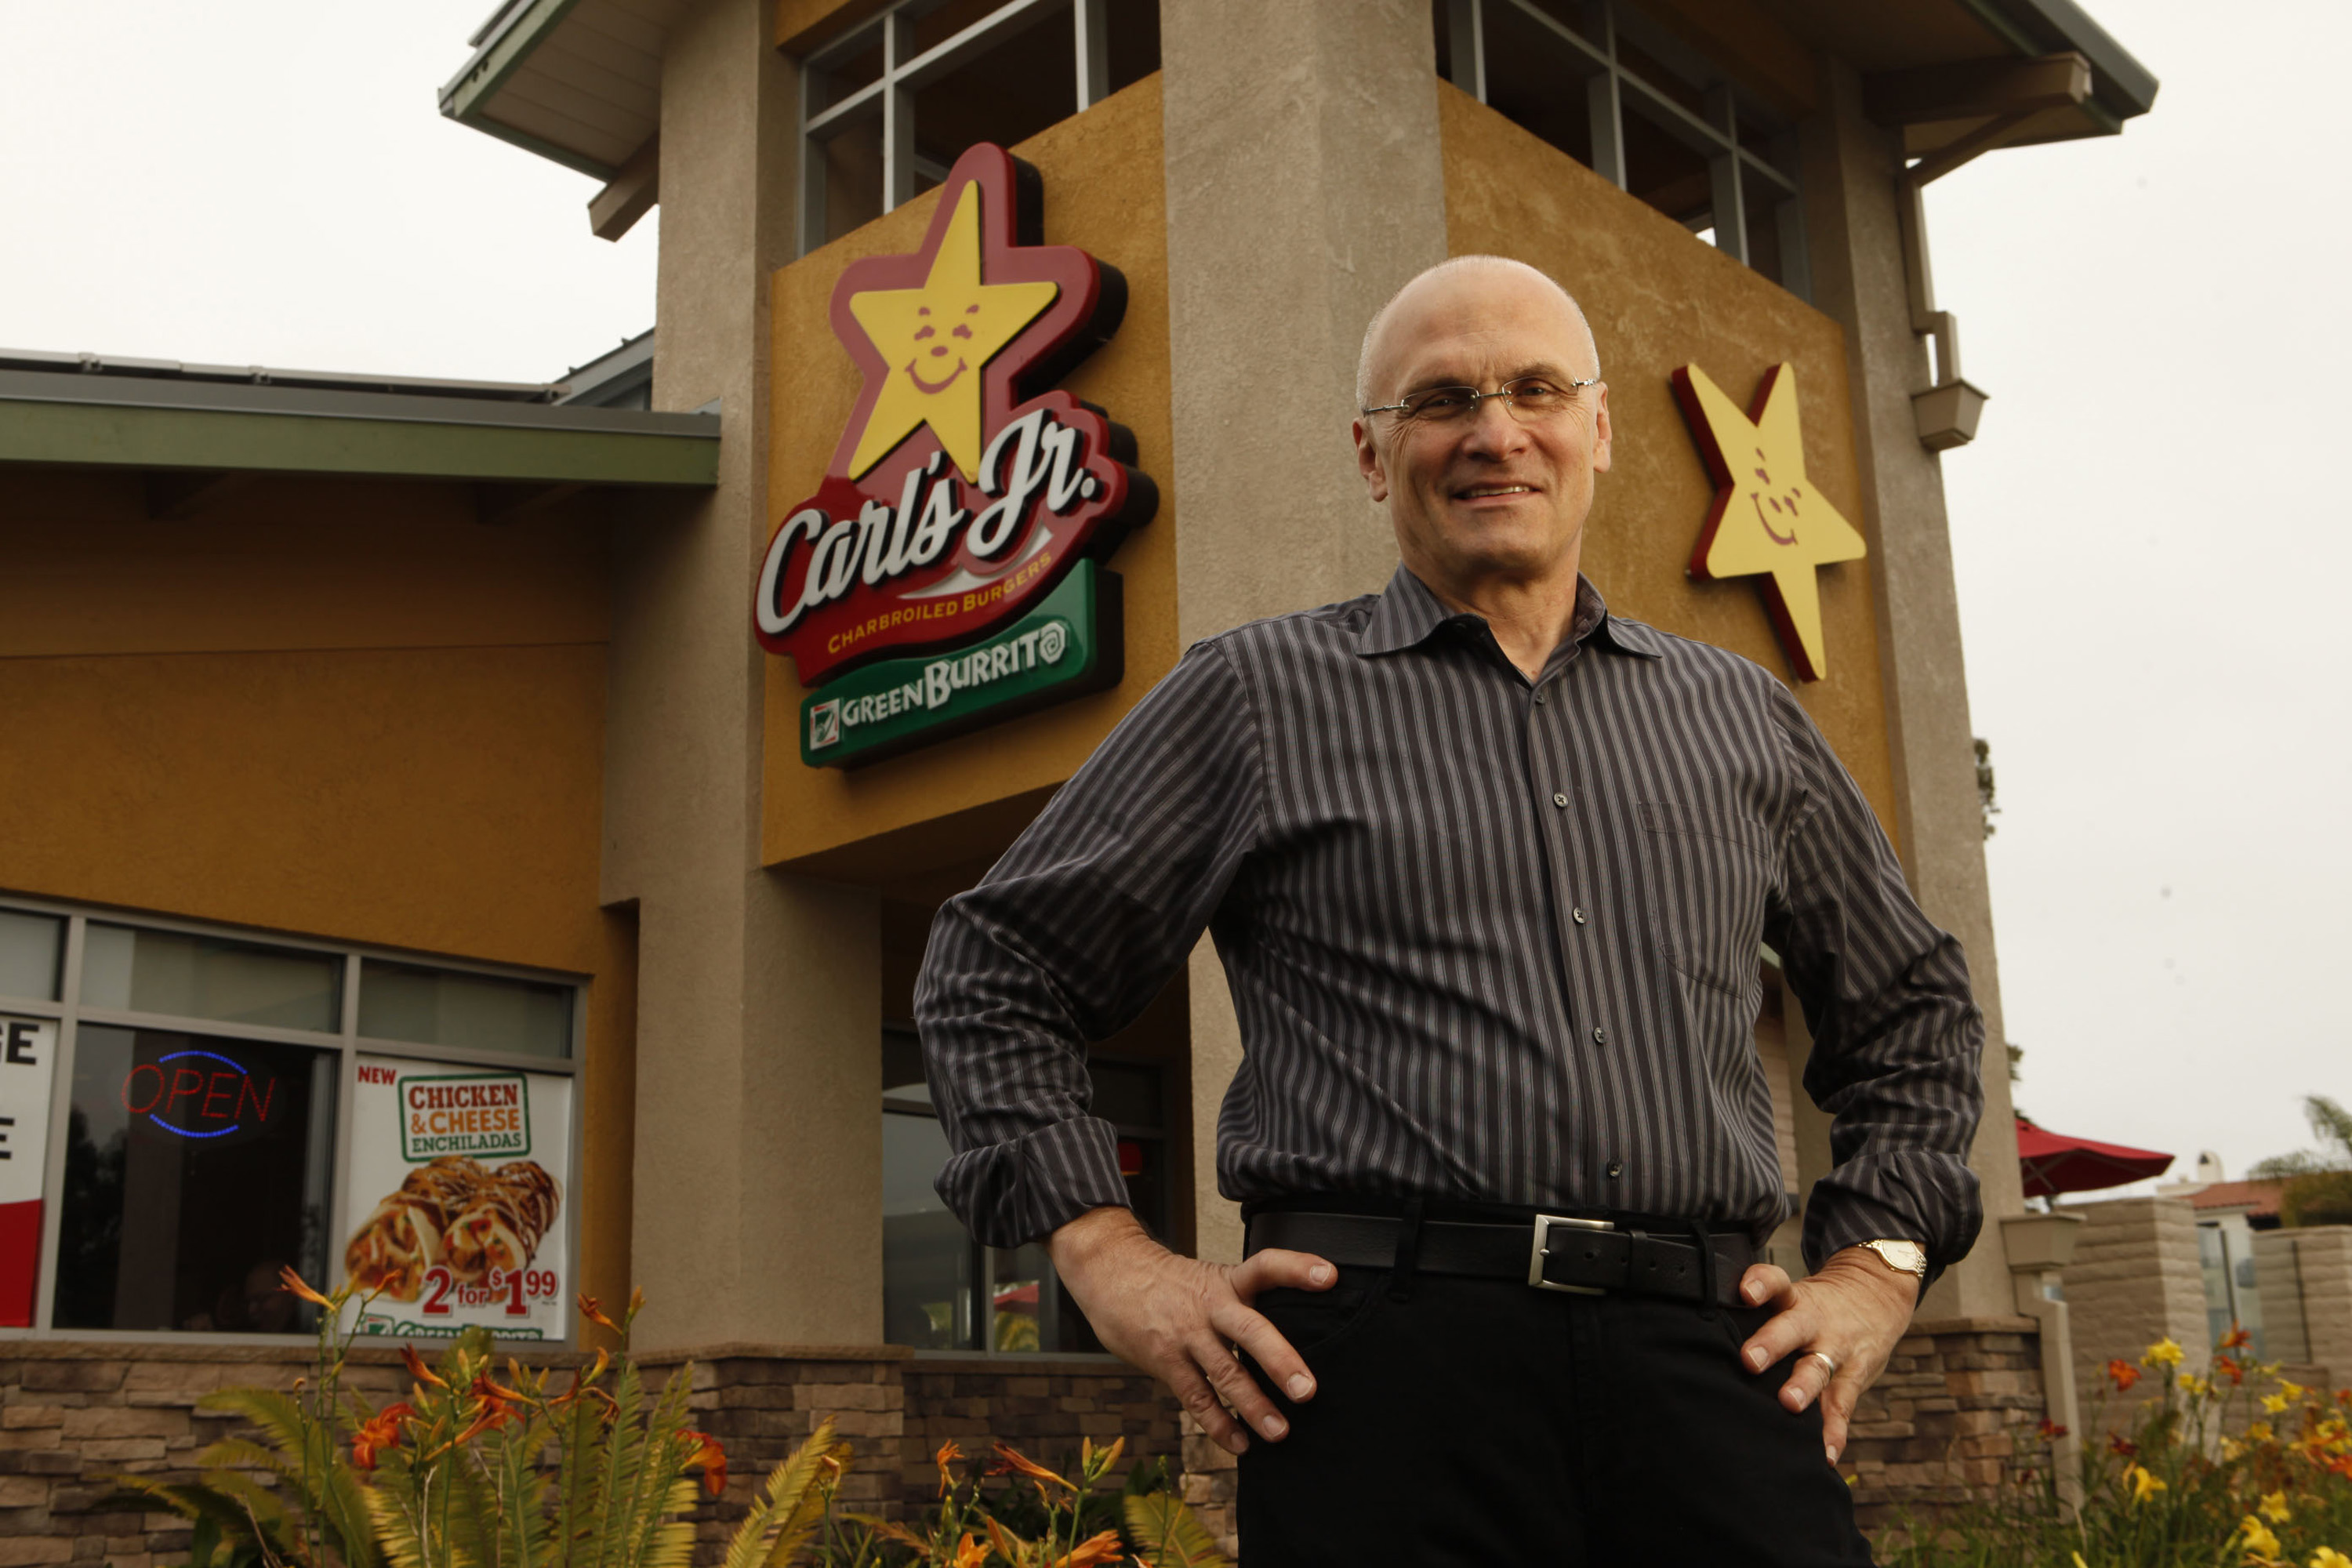 Andy Puzder has been chief executive of CKE Inc., which owns the Carl's Jr. and Hardee's chains, since 2000. President Donald Trump's nomination of Puzder as secretary of the Department of Labor is really a proxy fight in the business vs. labor battles that are likely to mark the Trump years. (Al Seib/Los Angeles Times/MCT)